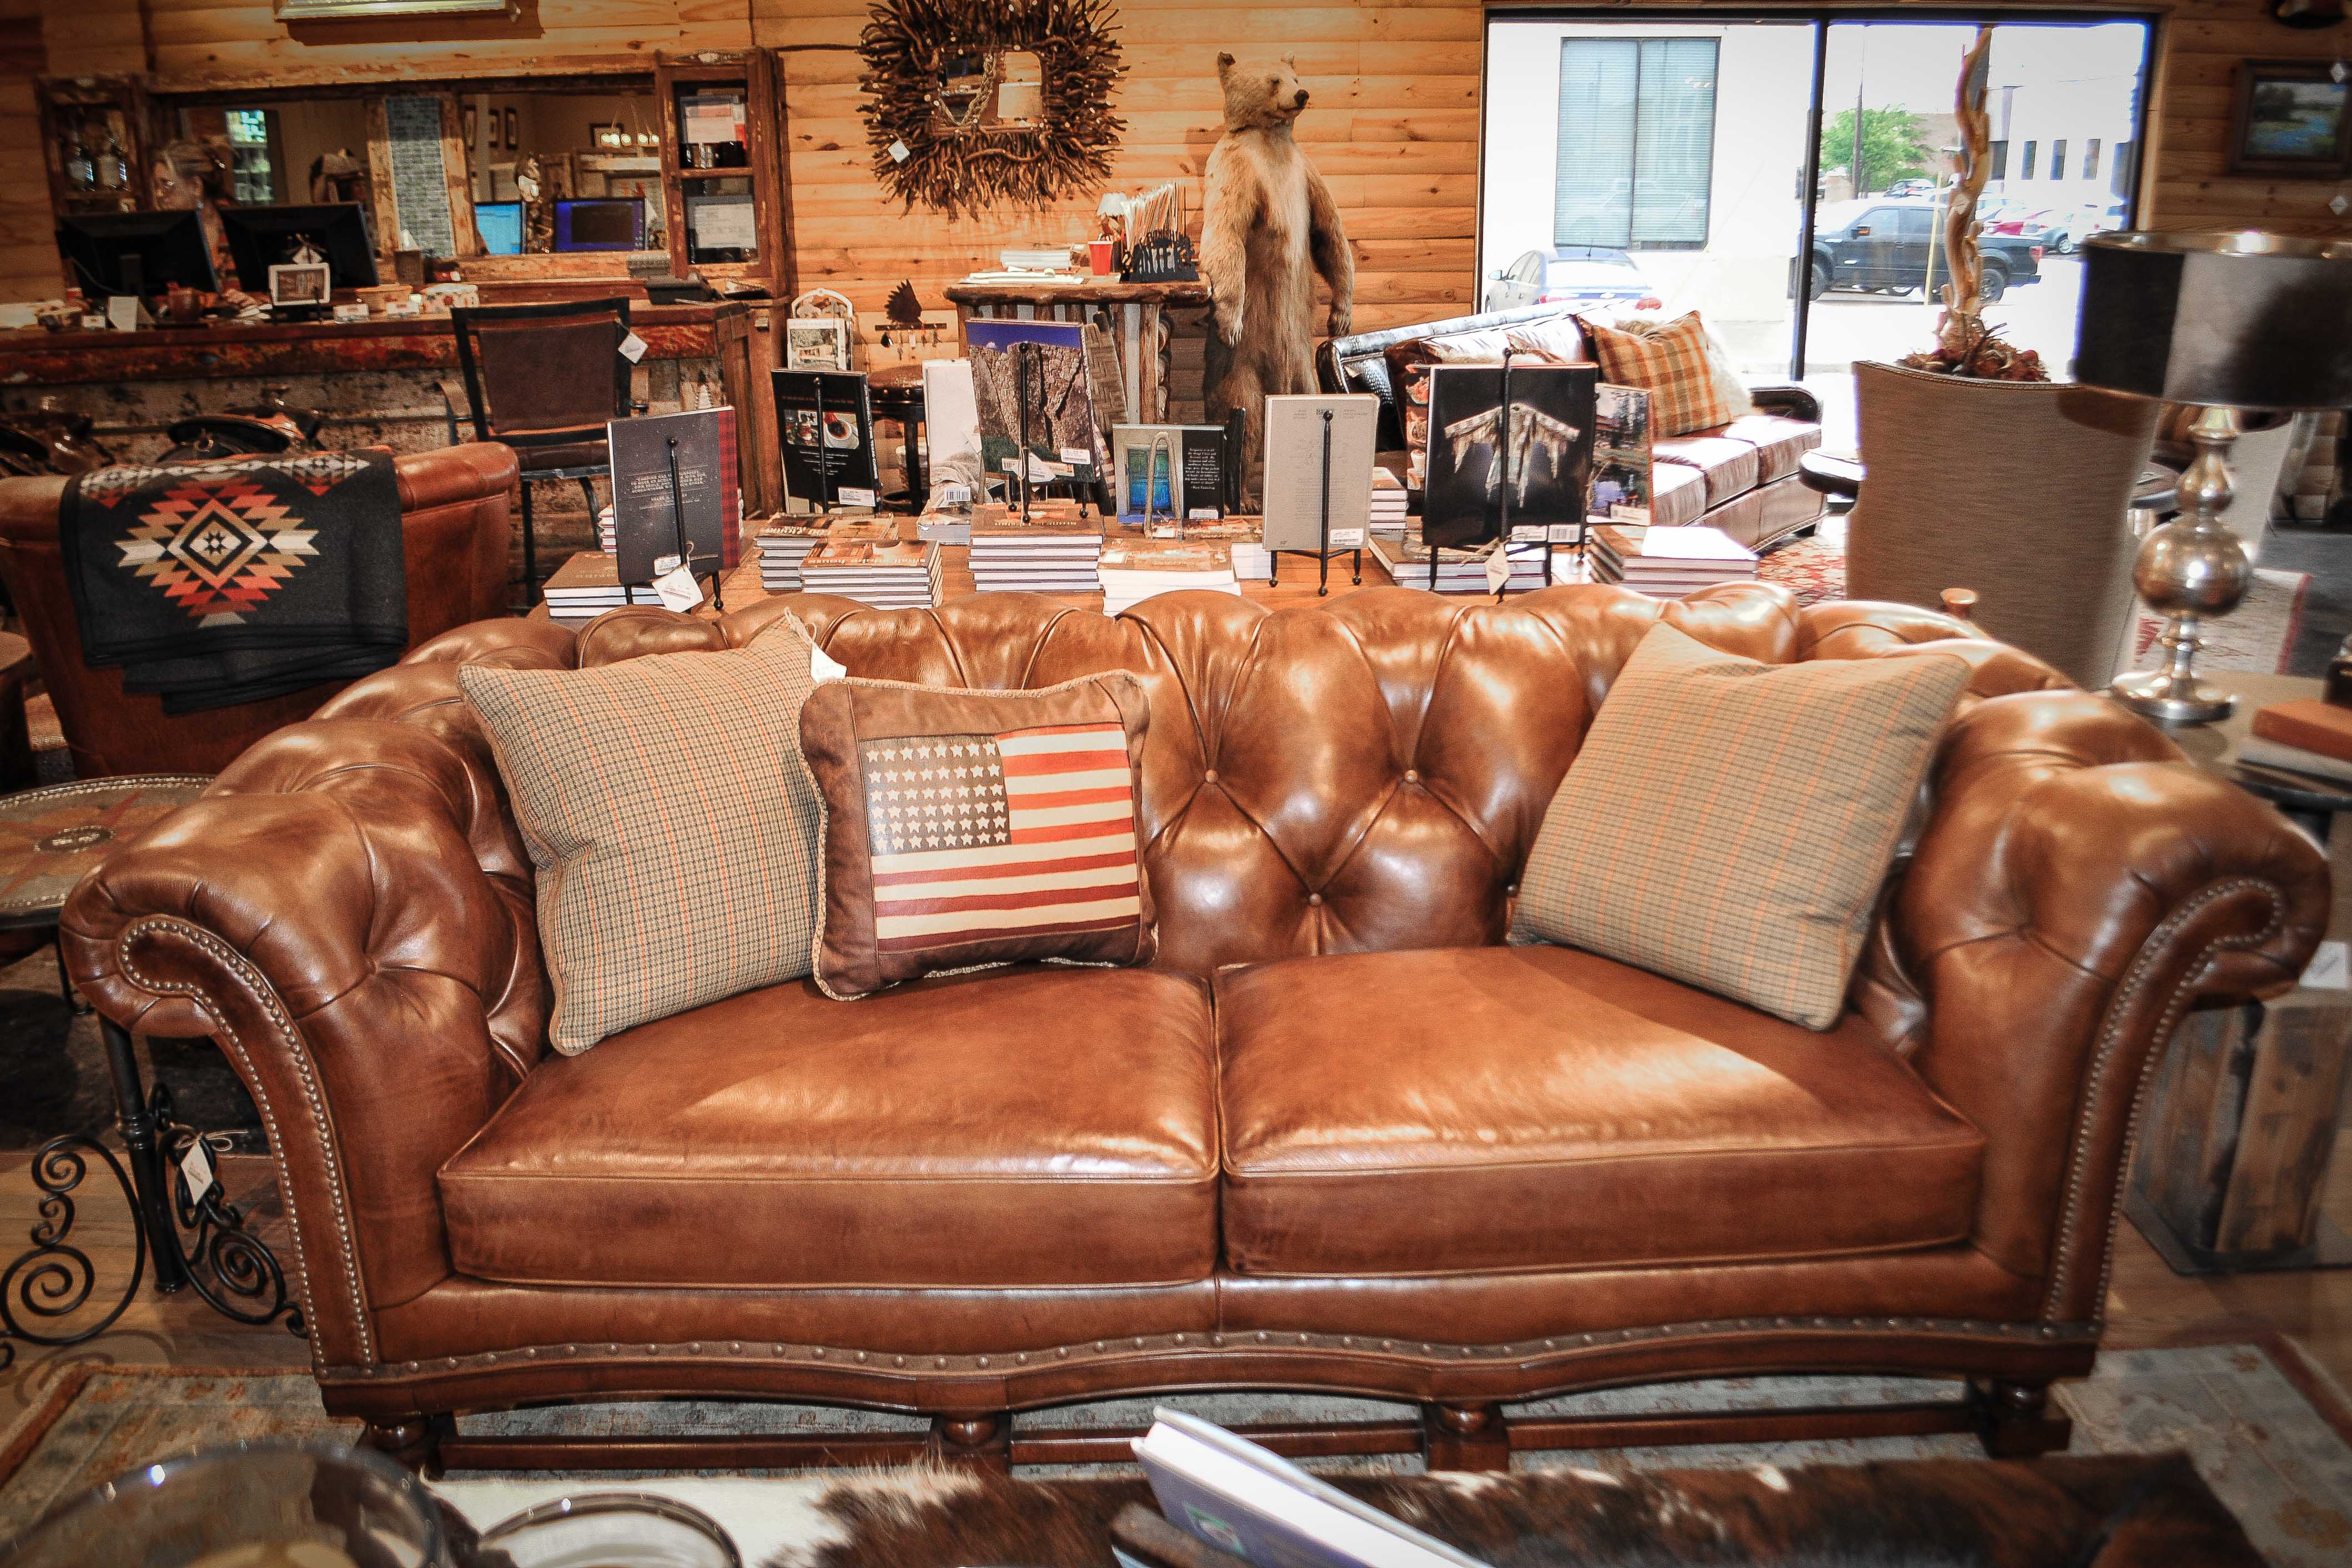 Rustic Brown Leather Teton Sofa at Anteks Furniture Store in Dallas